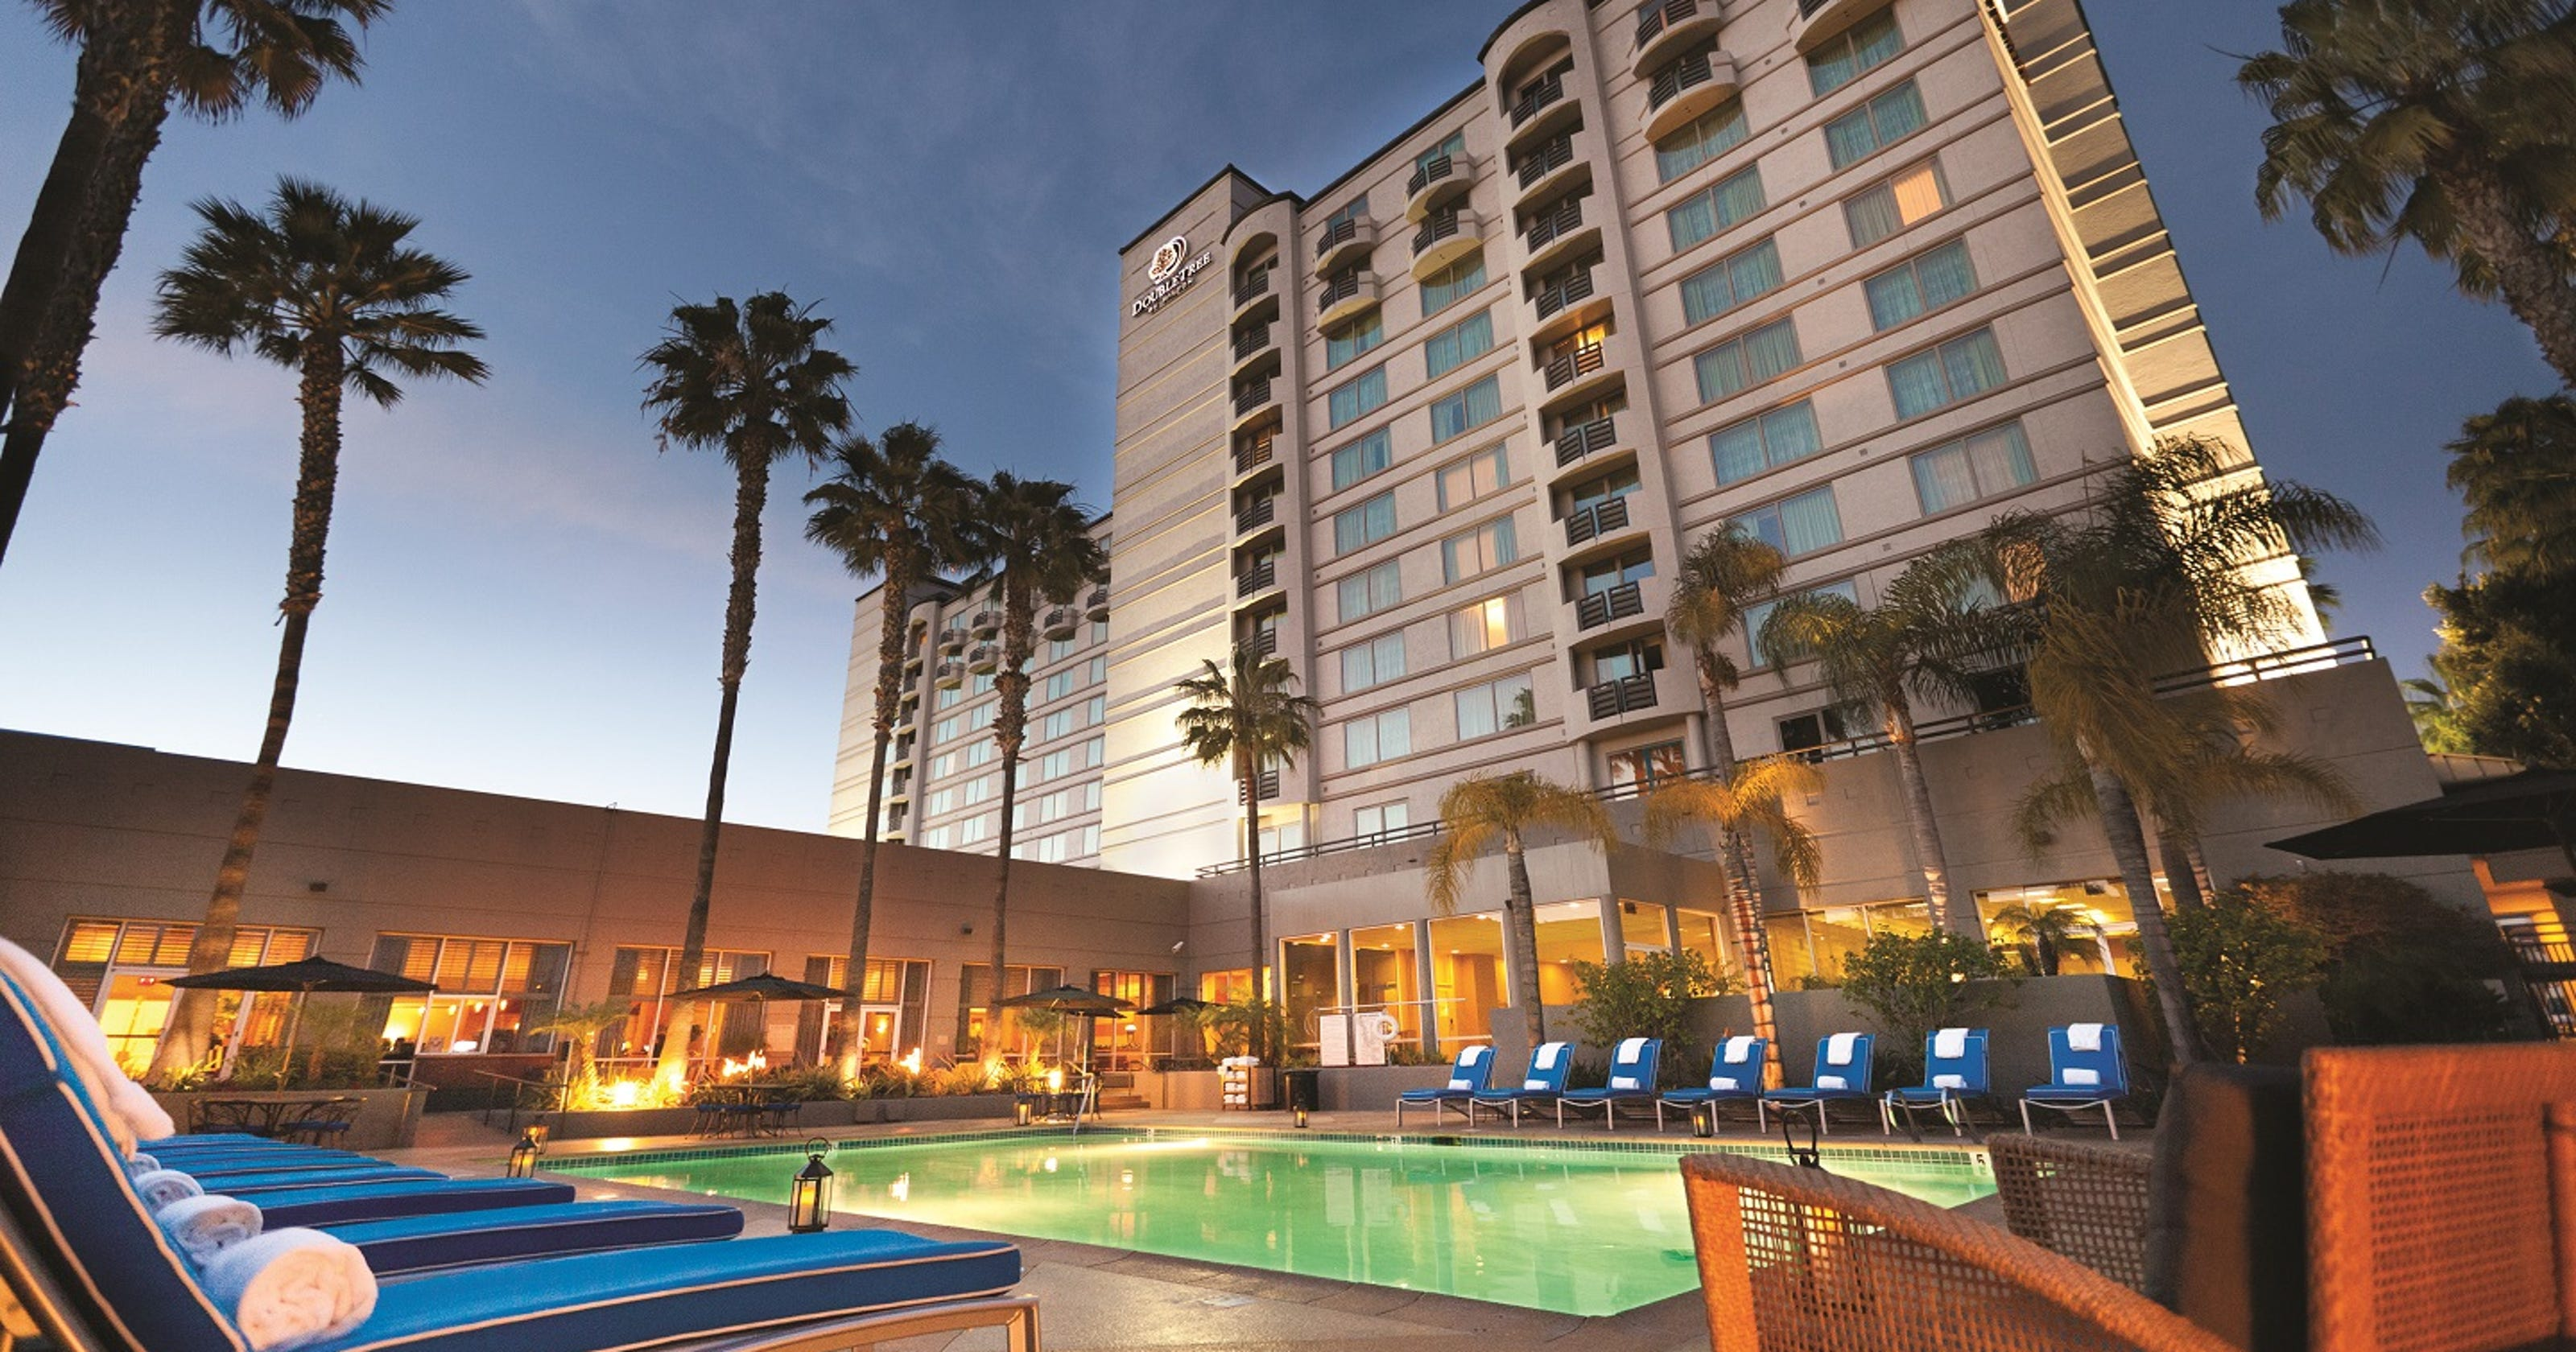 hilton hotels and resorts a look at its history and brands